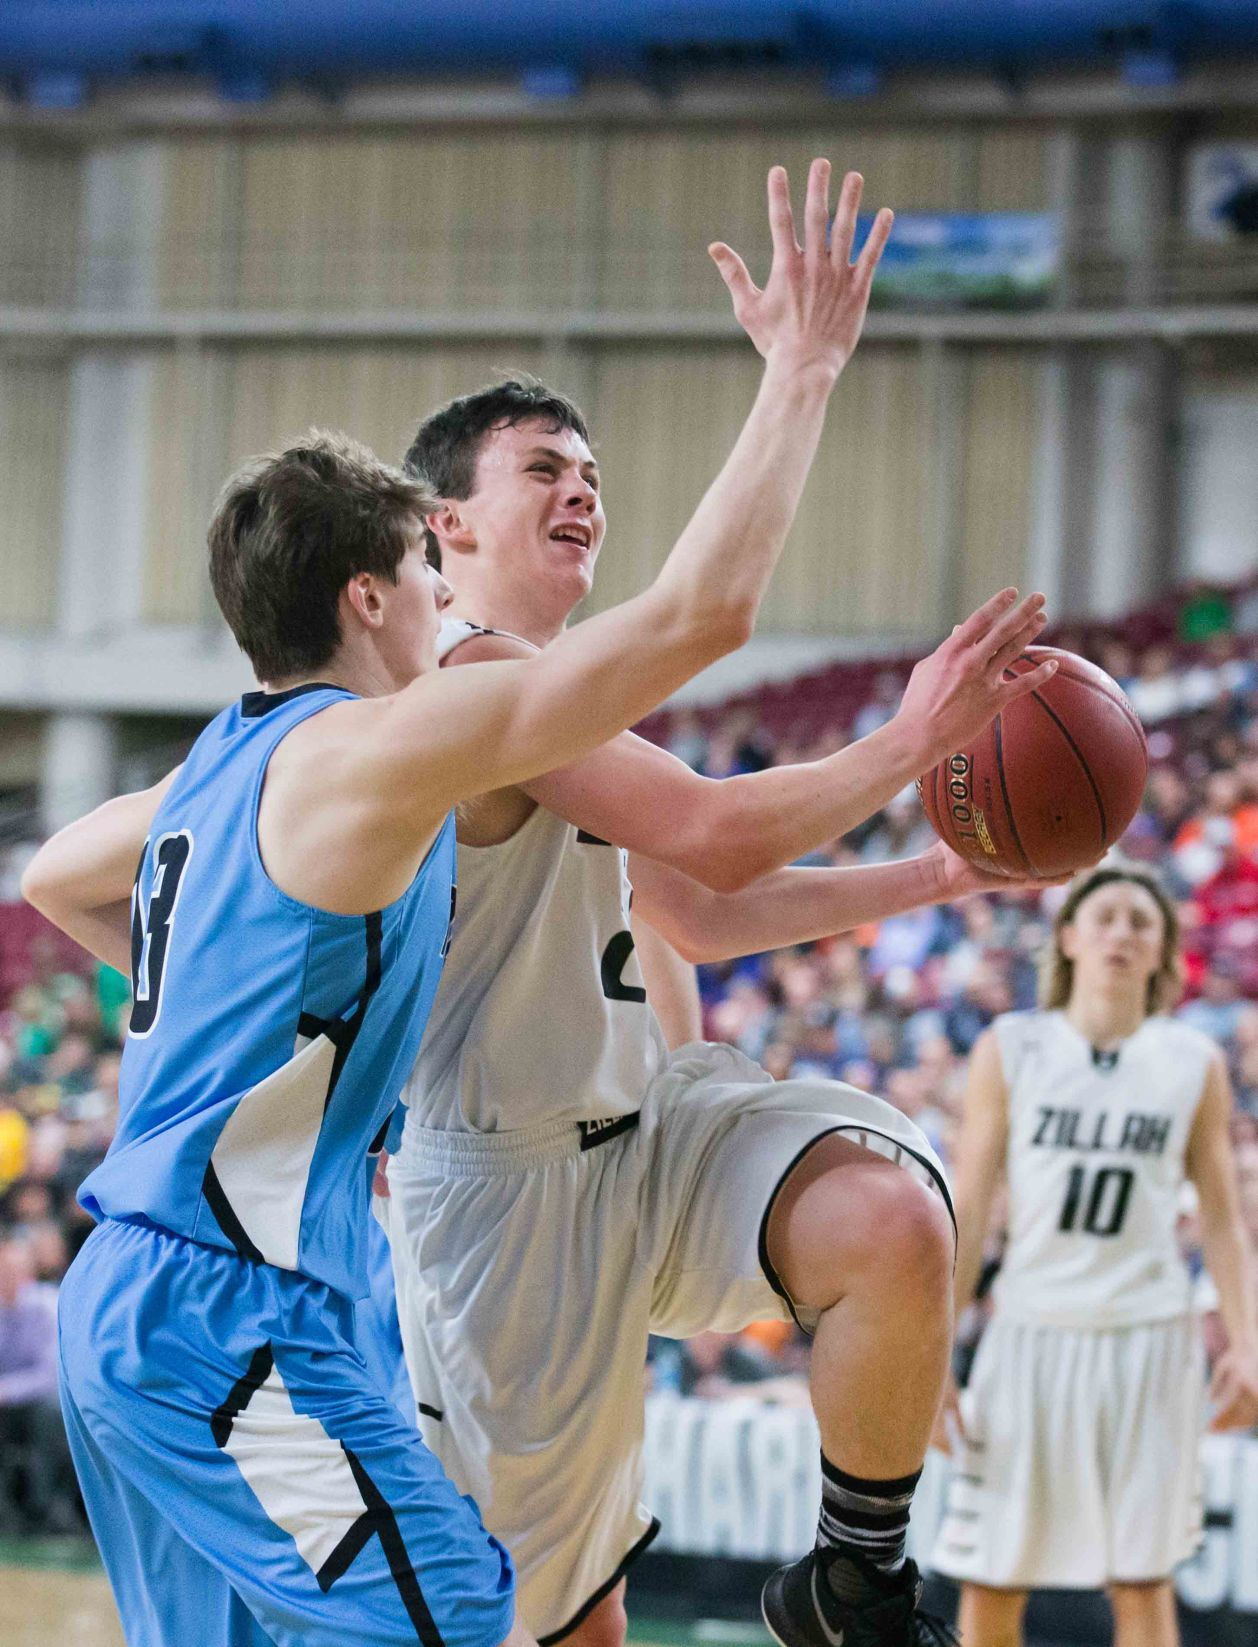 basketball coach cover letter%0A Whitaker leads Zillah boys to  A state title    a Boys   yakimaherald com